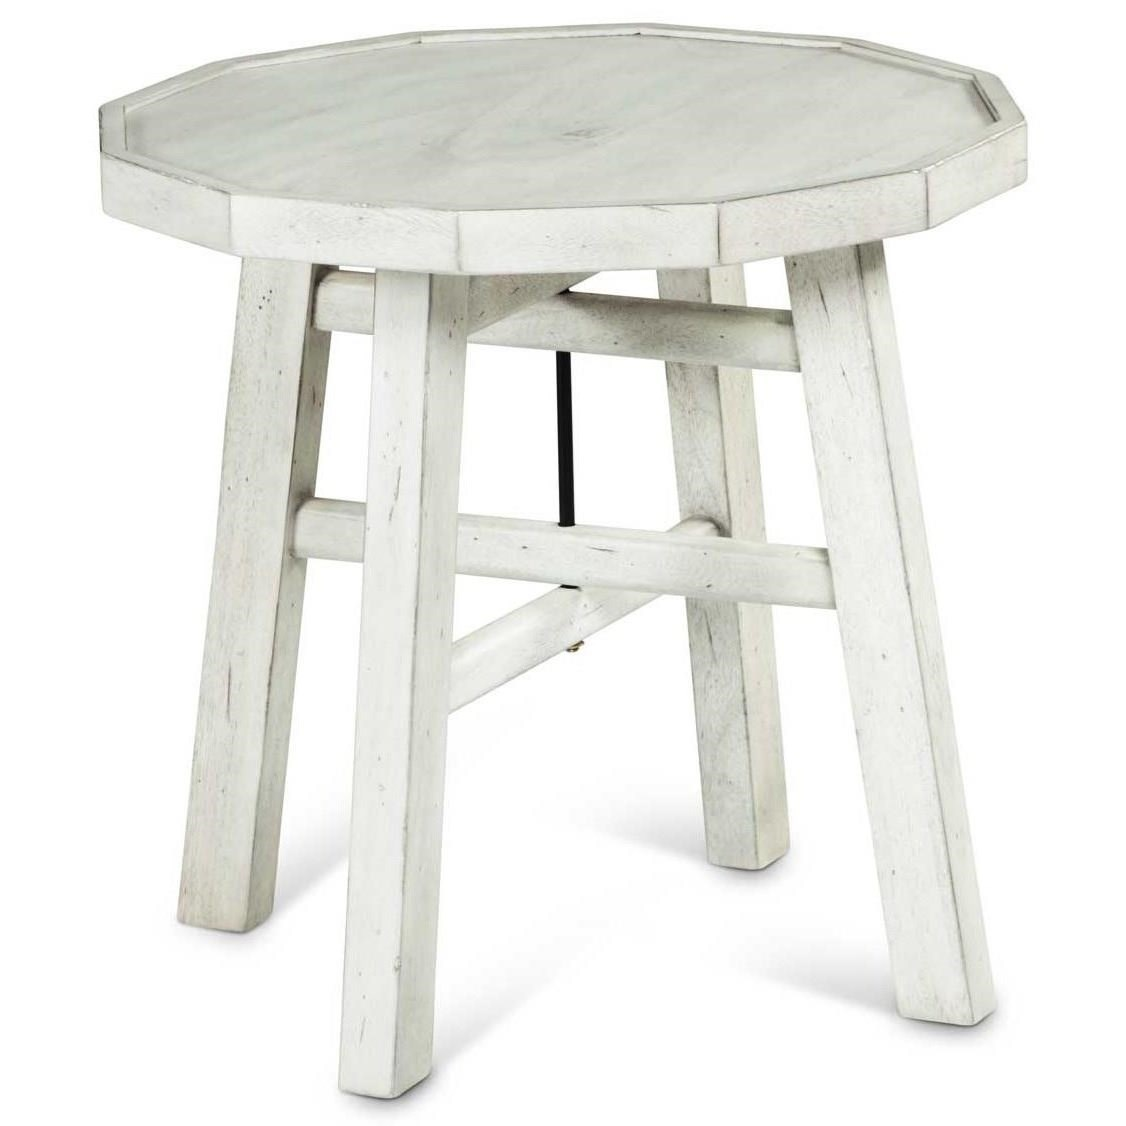 Paisley End Table by Steve Silver at Northeast Factory Direct